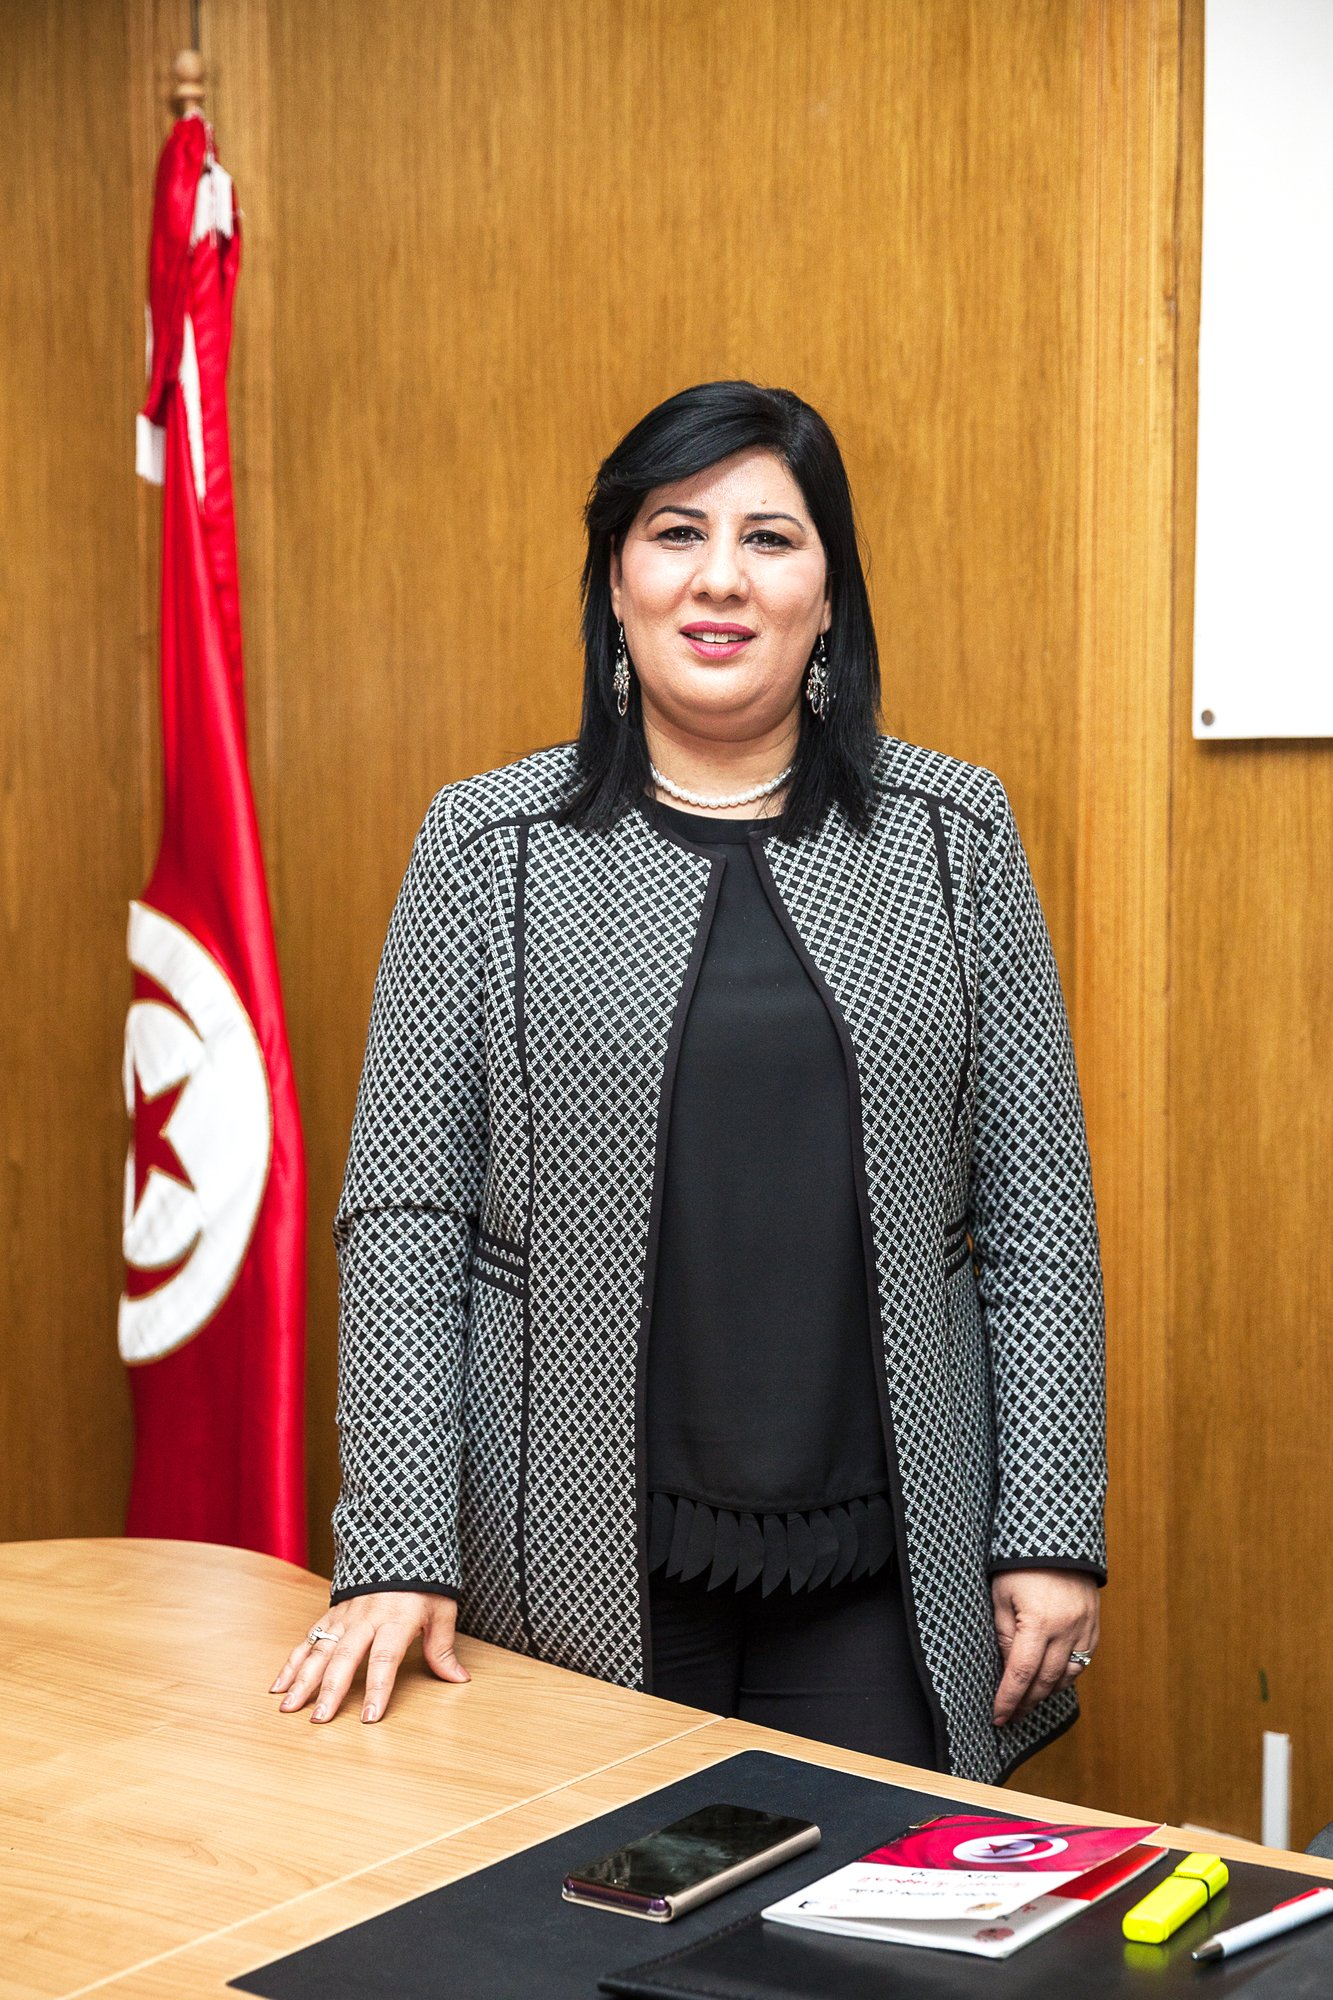 Tunisia, Tunis :Abir Moussi, the president of PARTI DESTROURIEN LIBRE (PDL) and ex member of RCD ( Ben Ali's Party), poses in her office on Montplaisir in 27 February 2019. © Ons Abid for JA